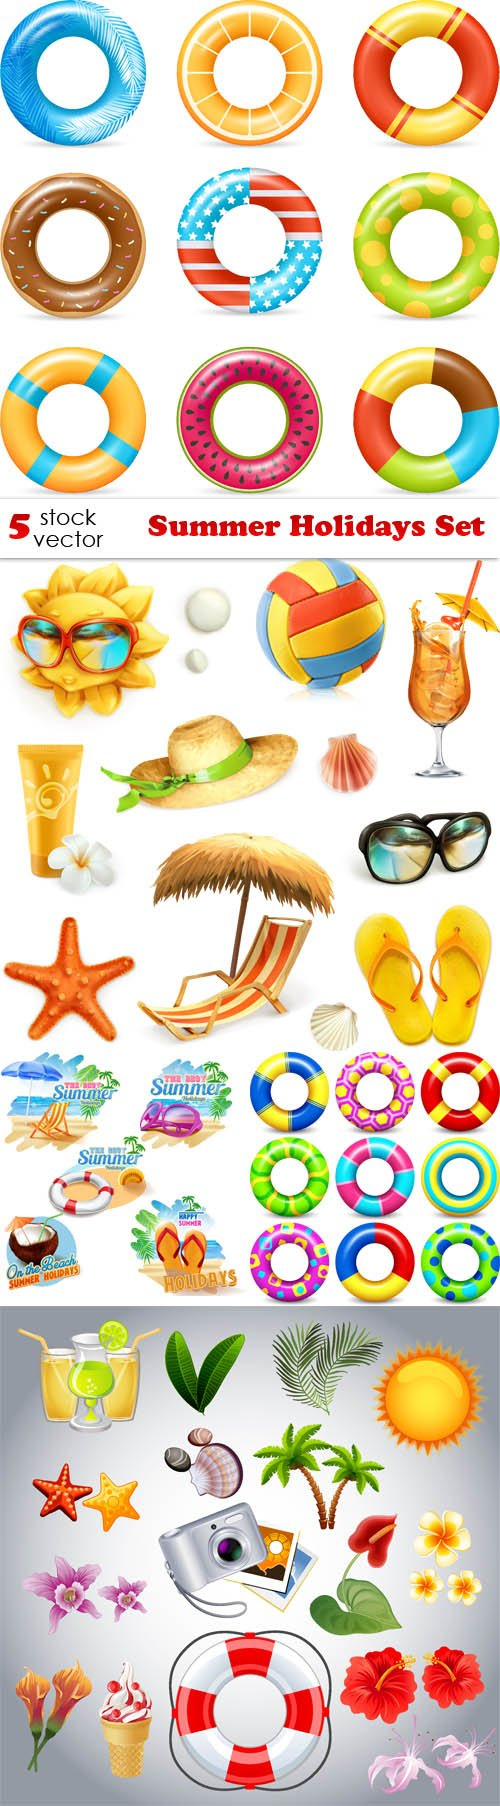 Vectors - Summer Holidays Set